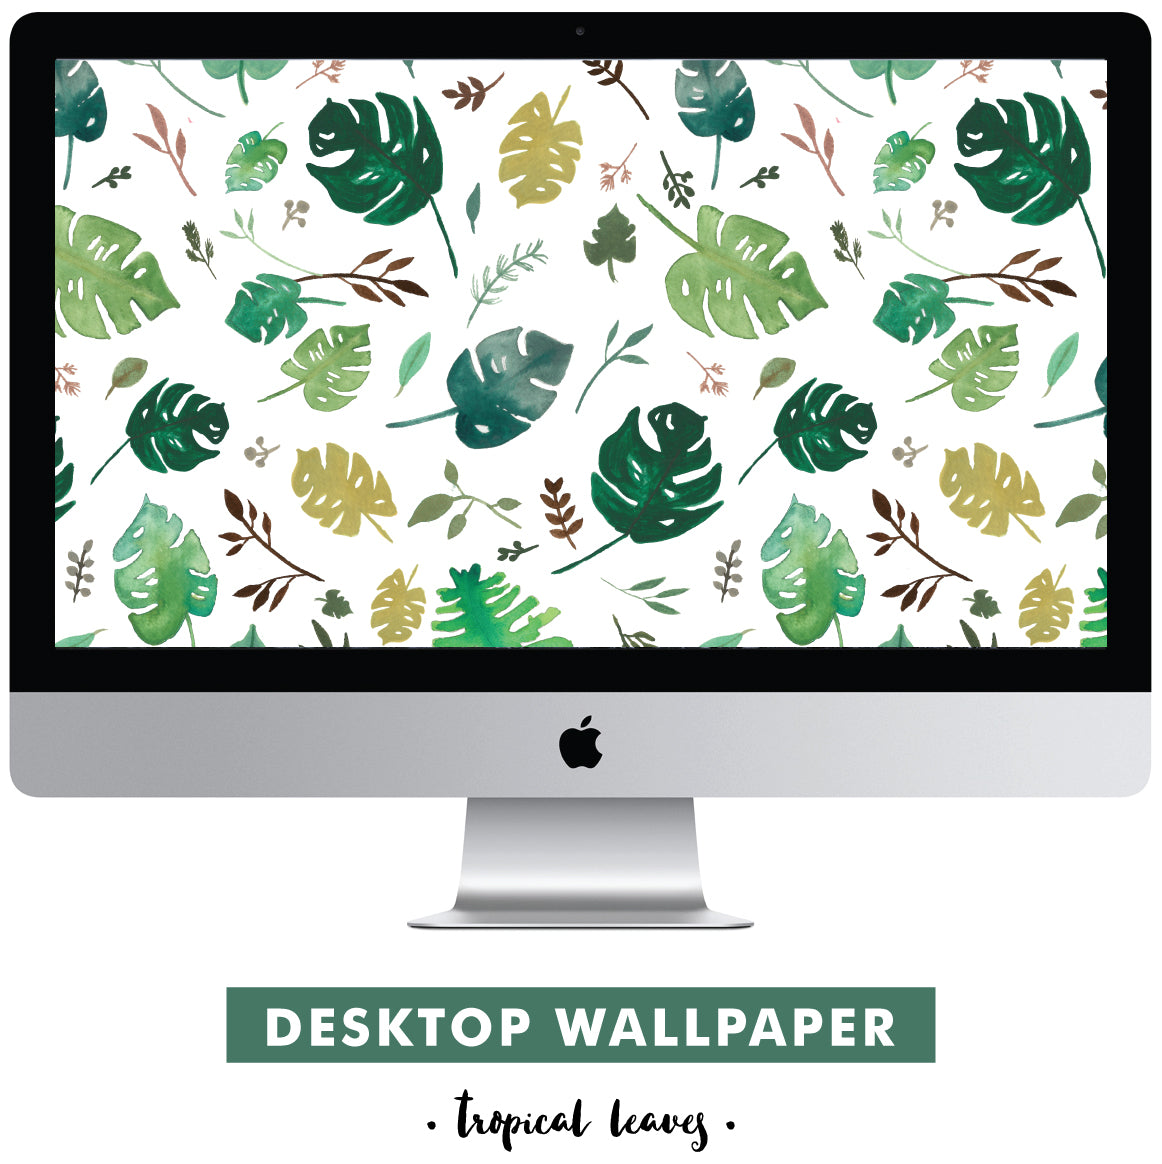 tropical leaves desktop wallpaper by erika firm